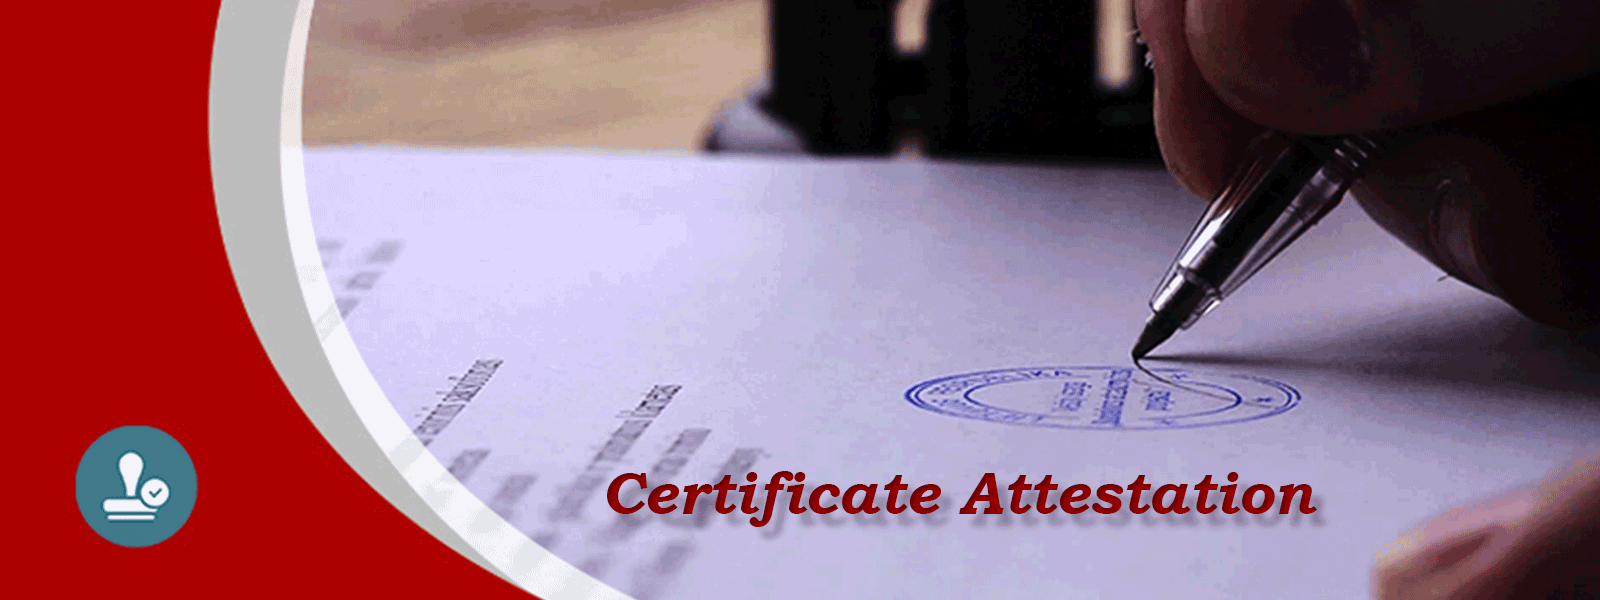 CERTIFICATE ATTESTATION